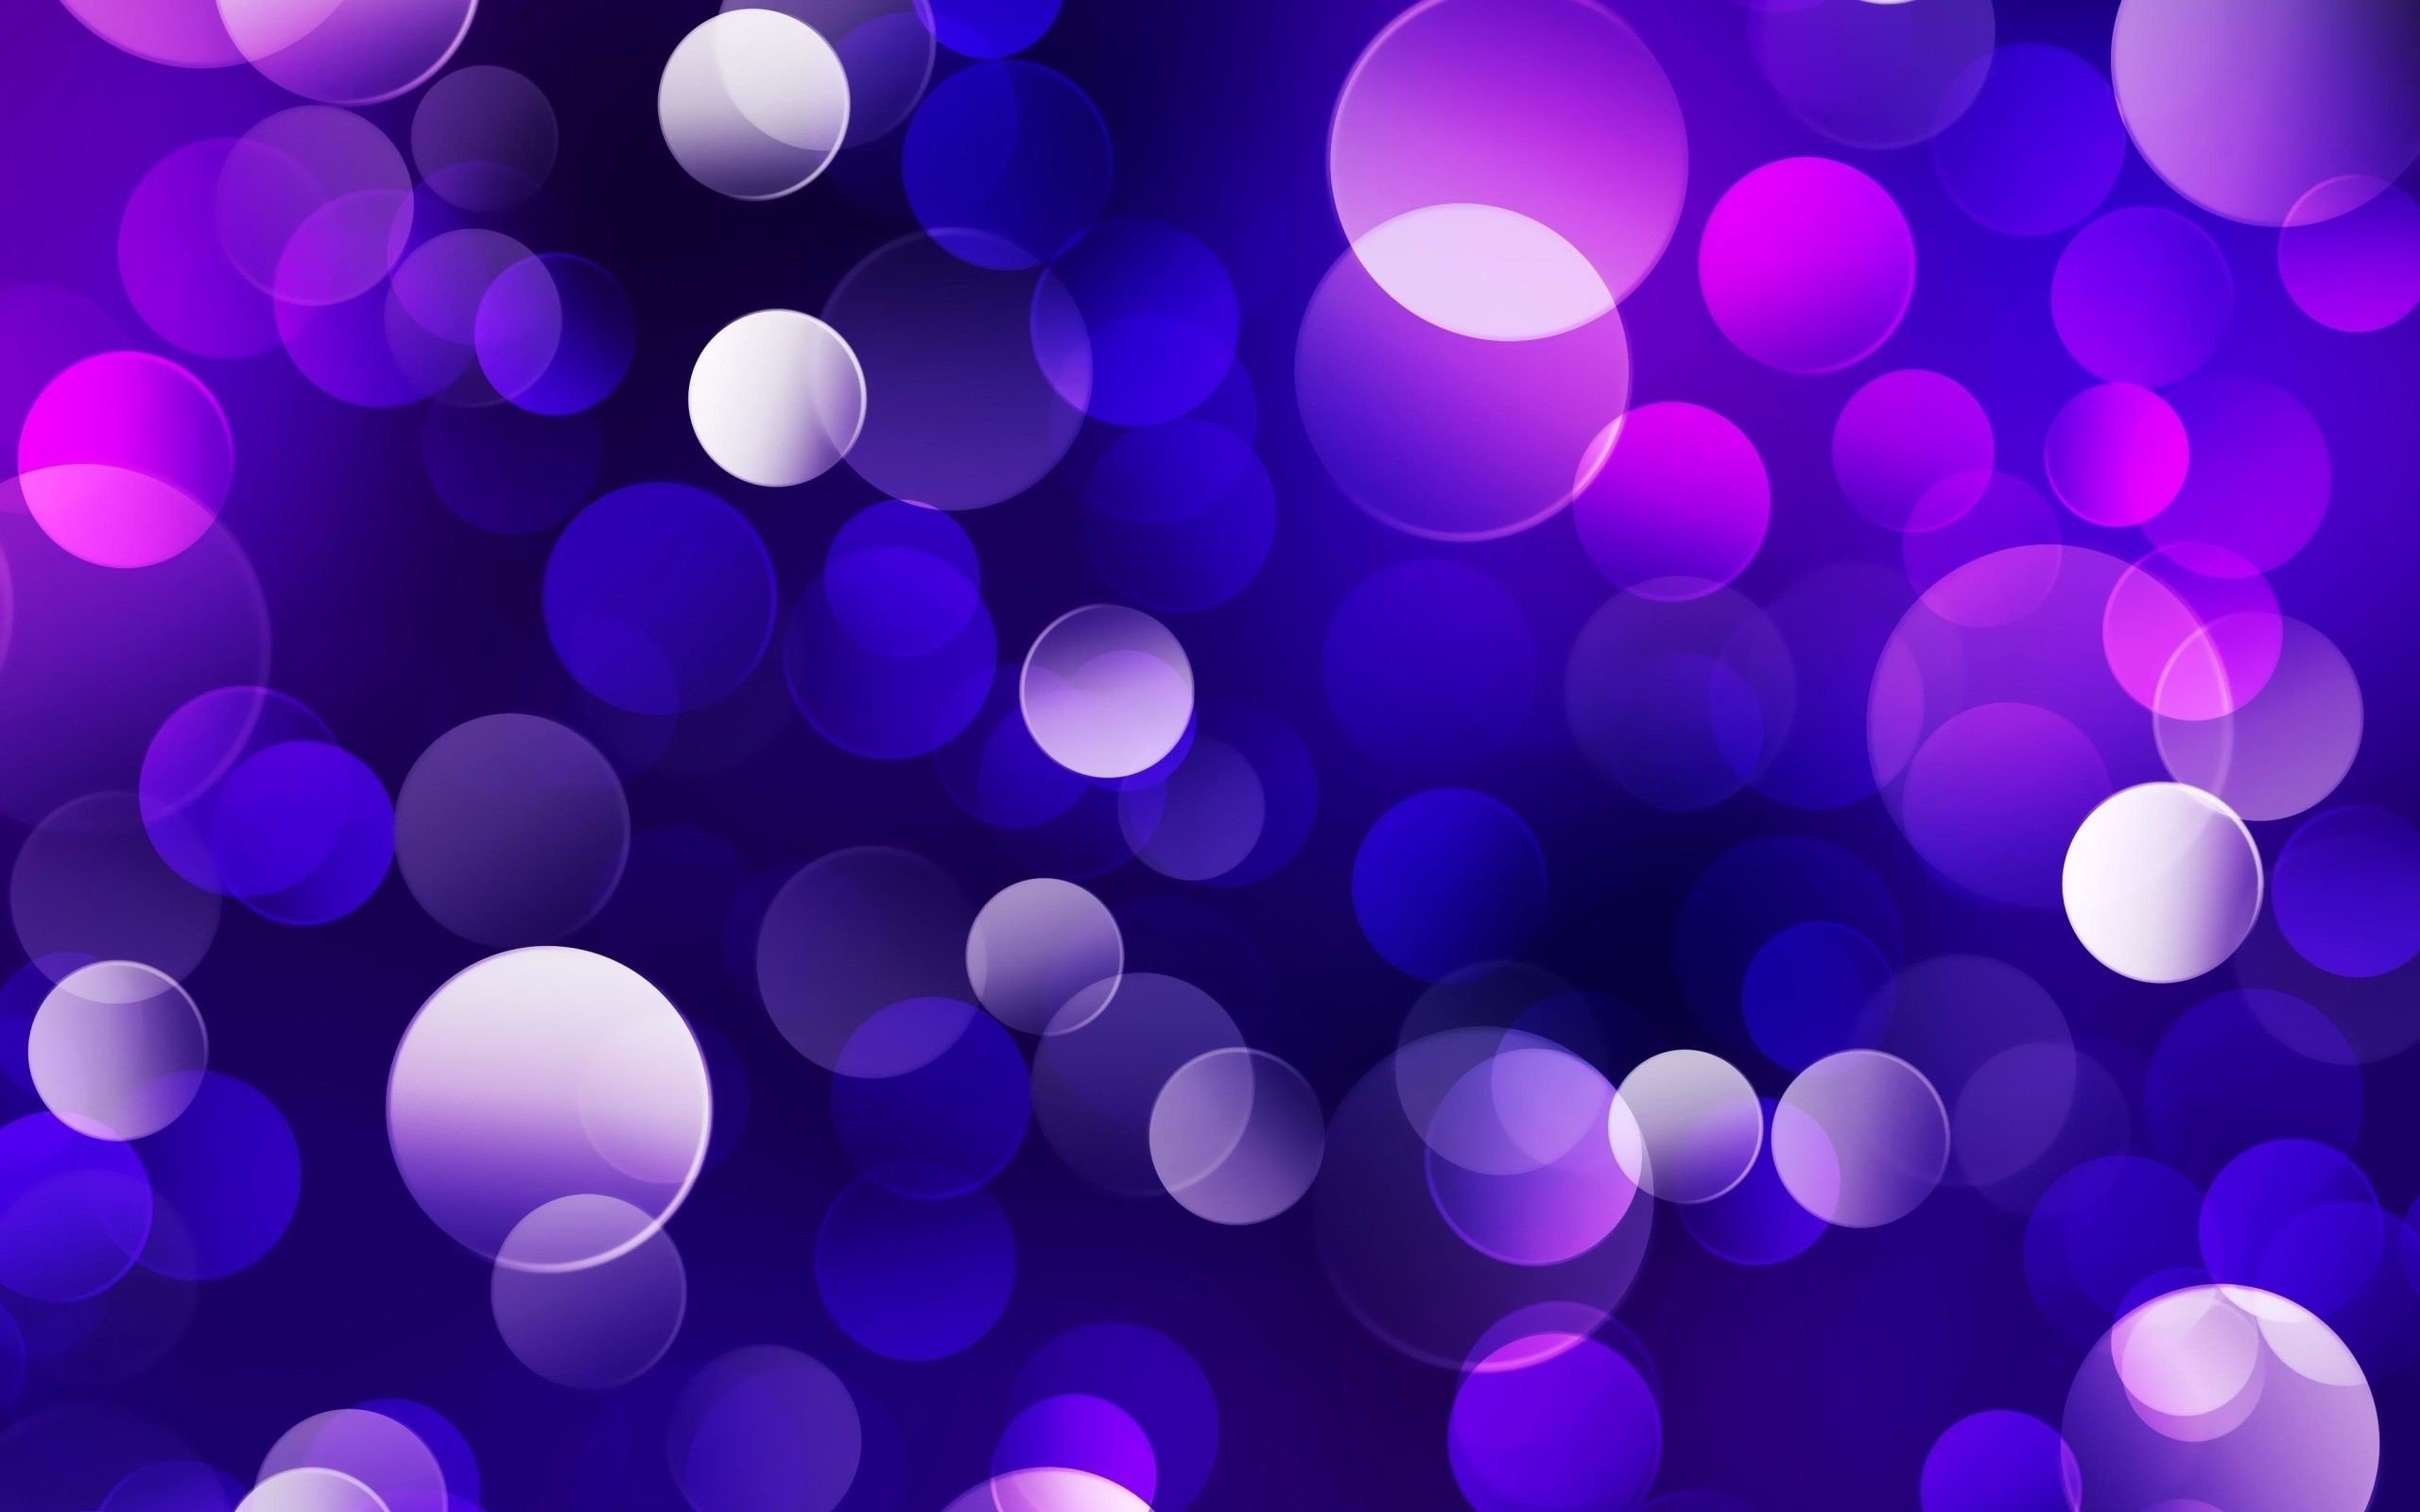 Abstract Wallpaper: Girly Purple Wallpapers Picture with HD .